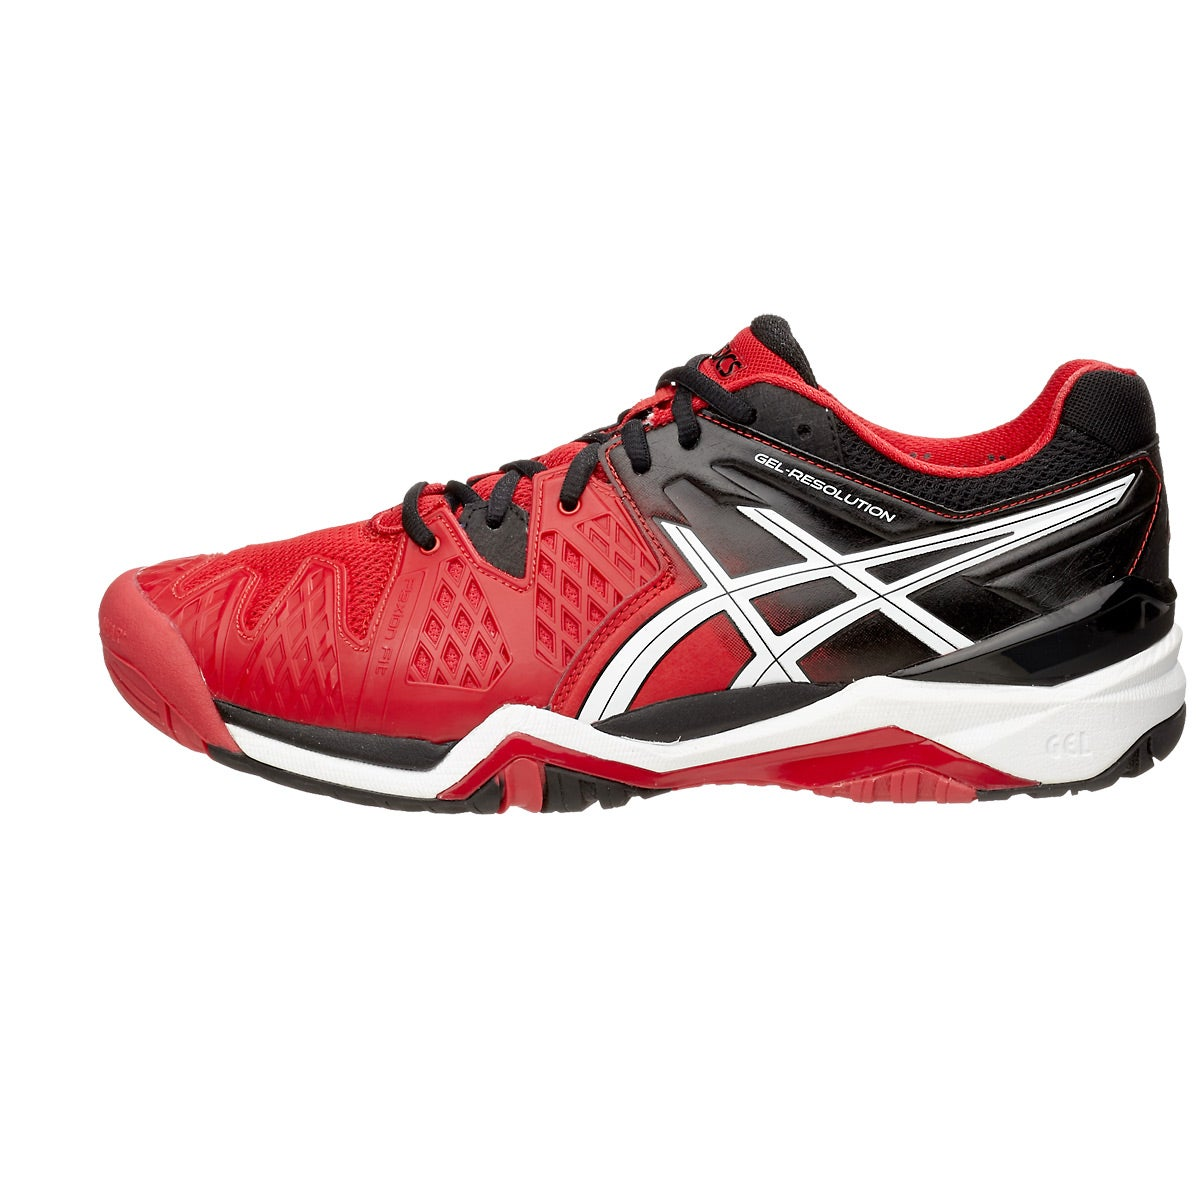 Asics Red Black Tennis Shoes